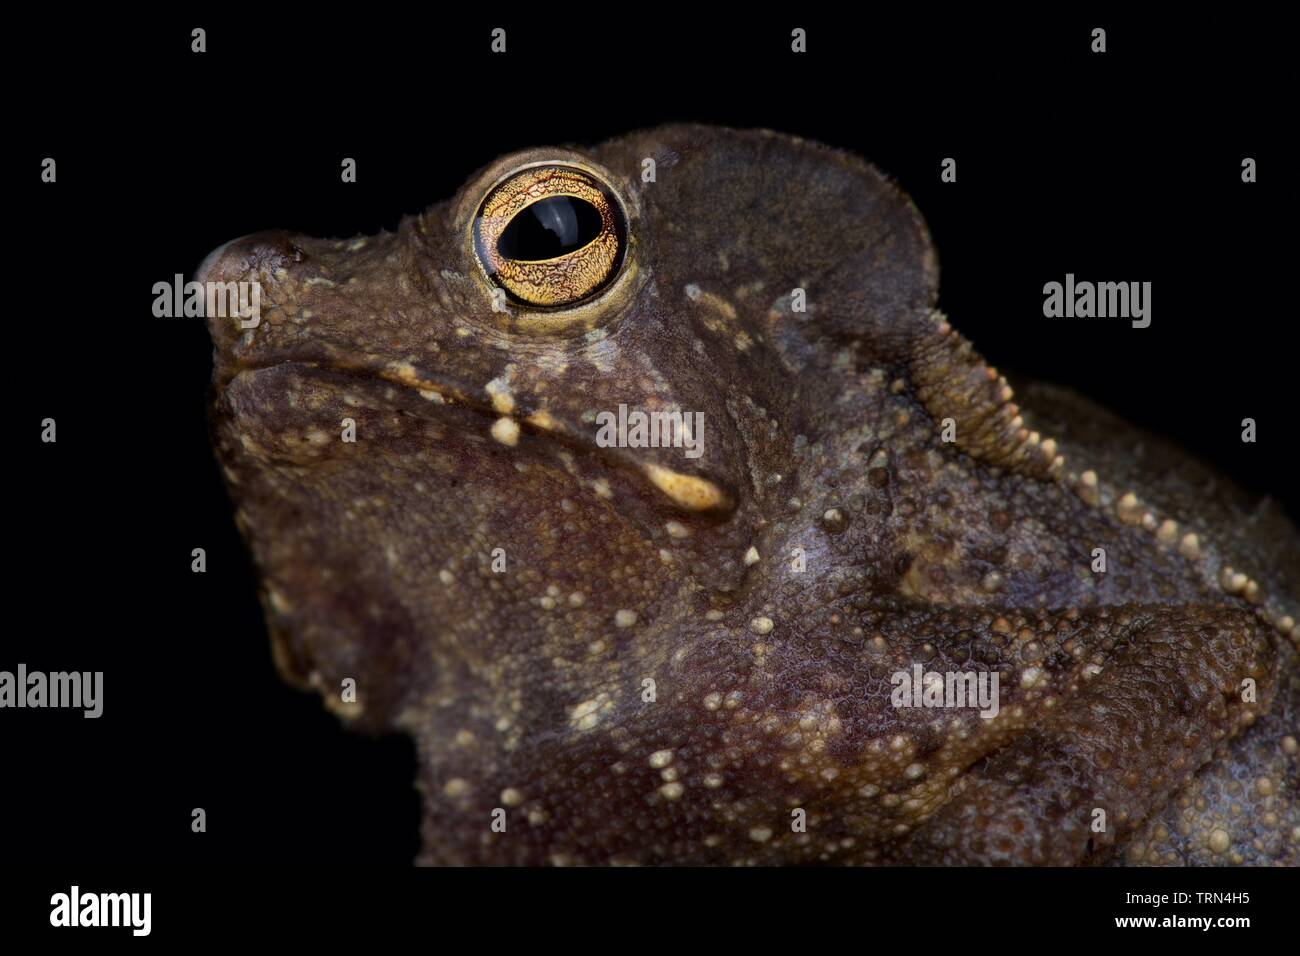 Marty's Mitred Toad (Rhinella martyi) - Stock Image